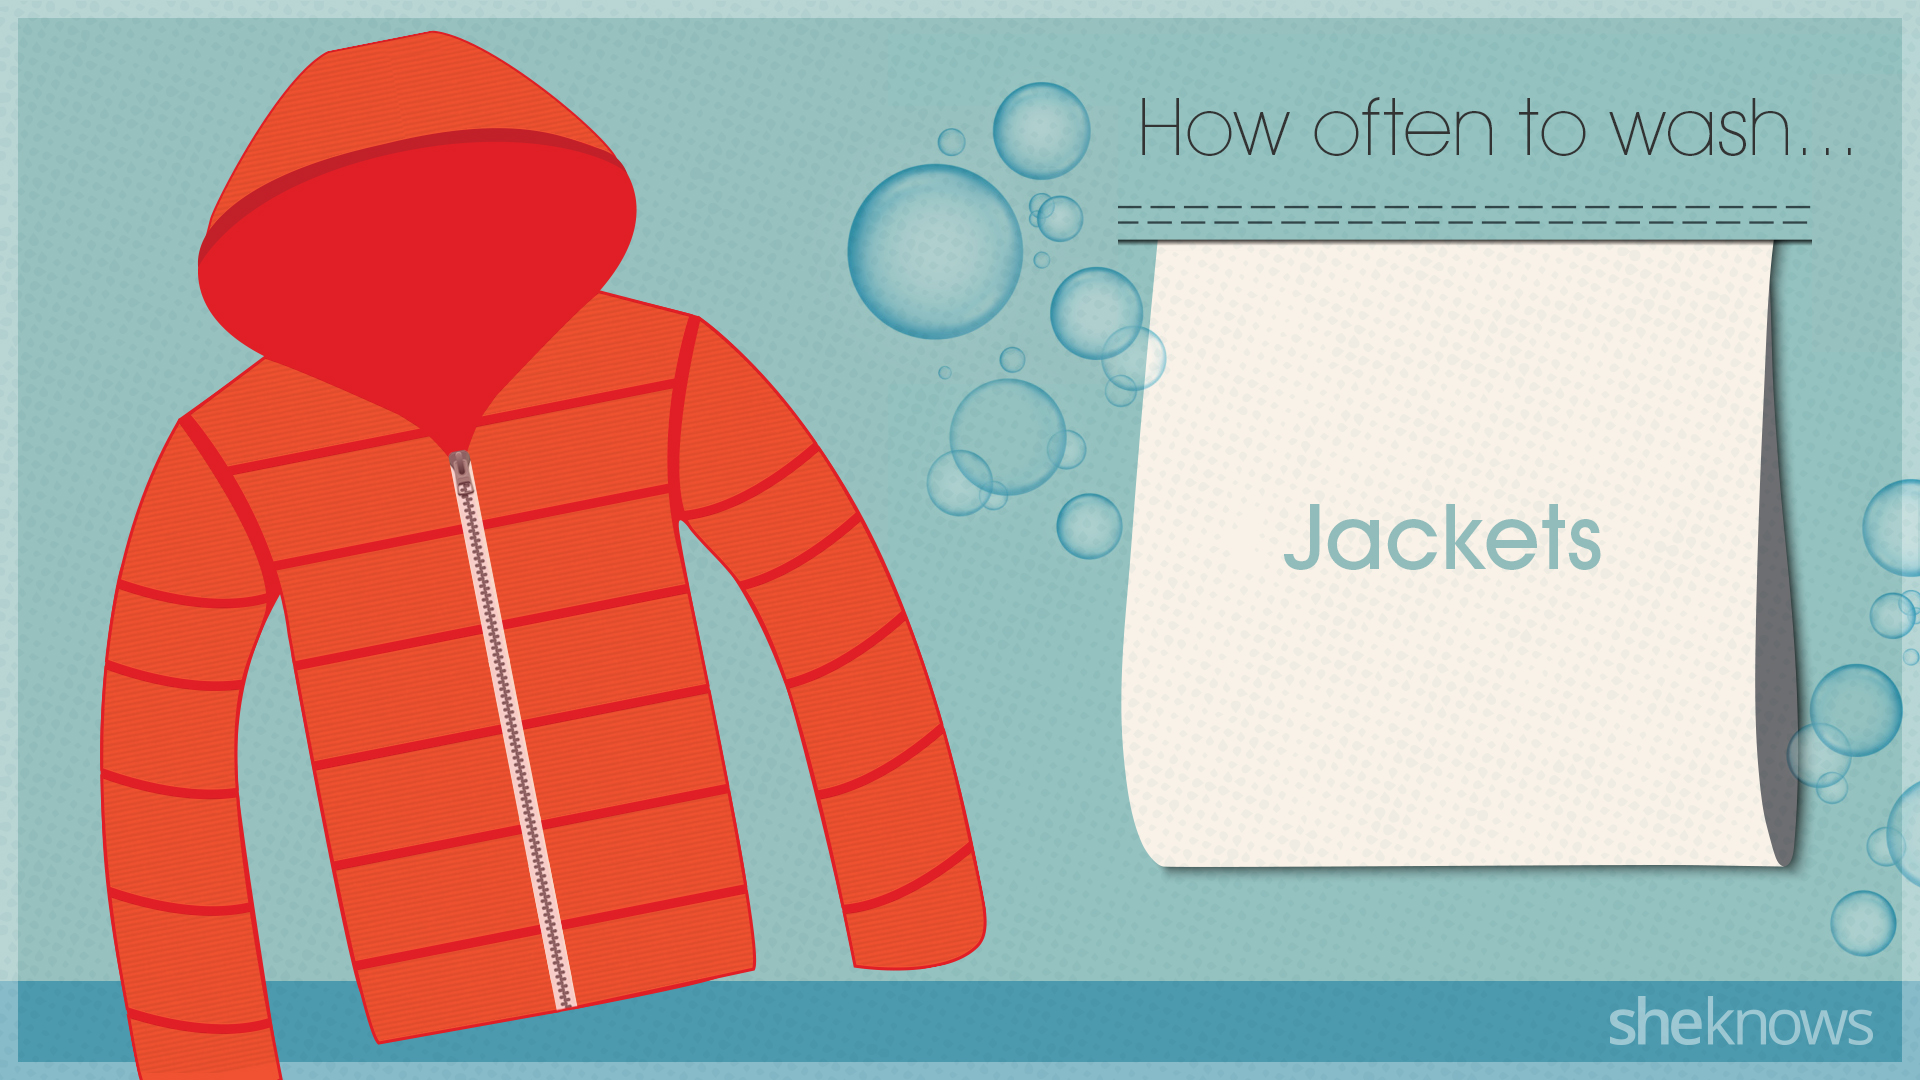 You're probably washing your clothes too much: Jackets